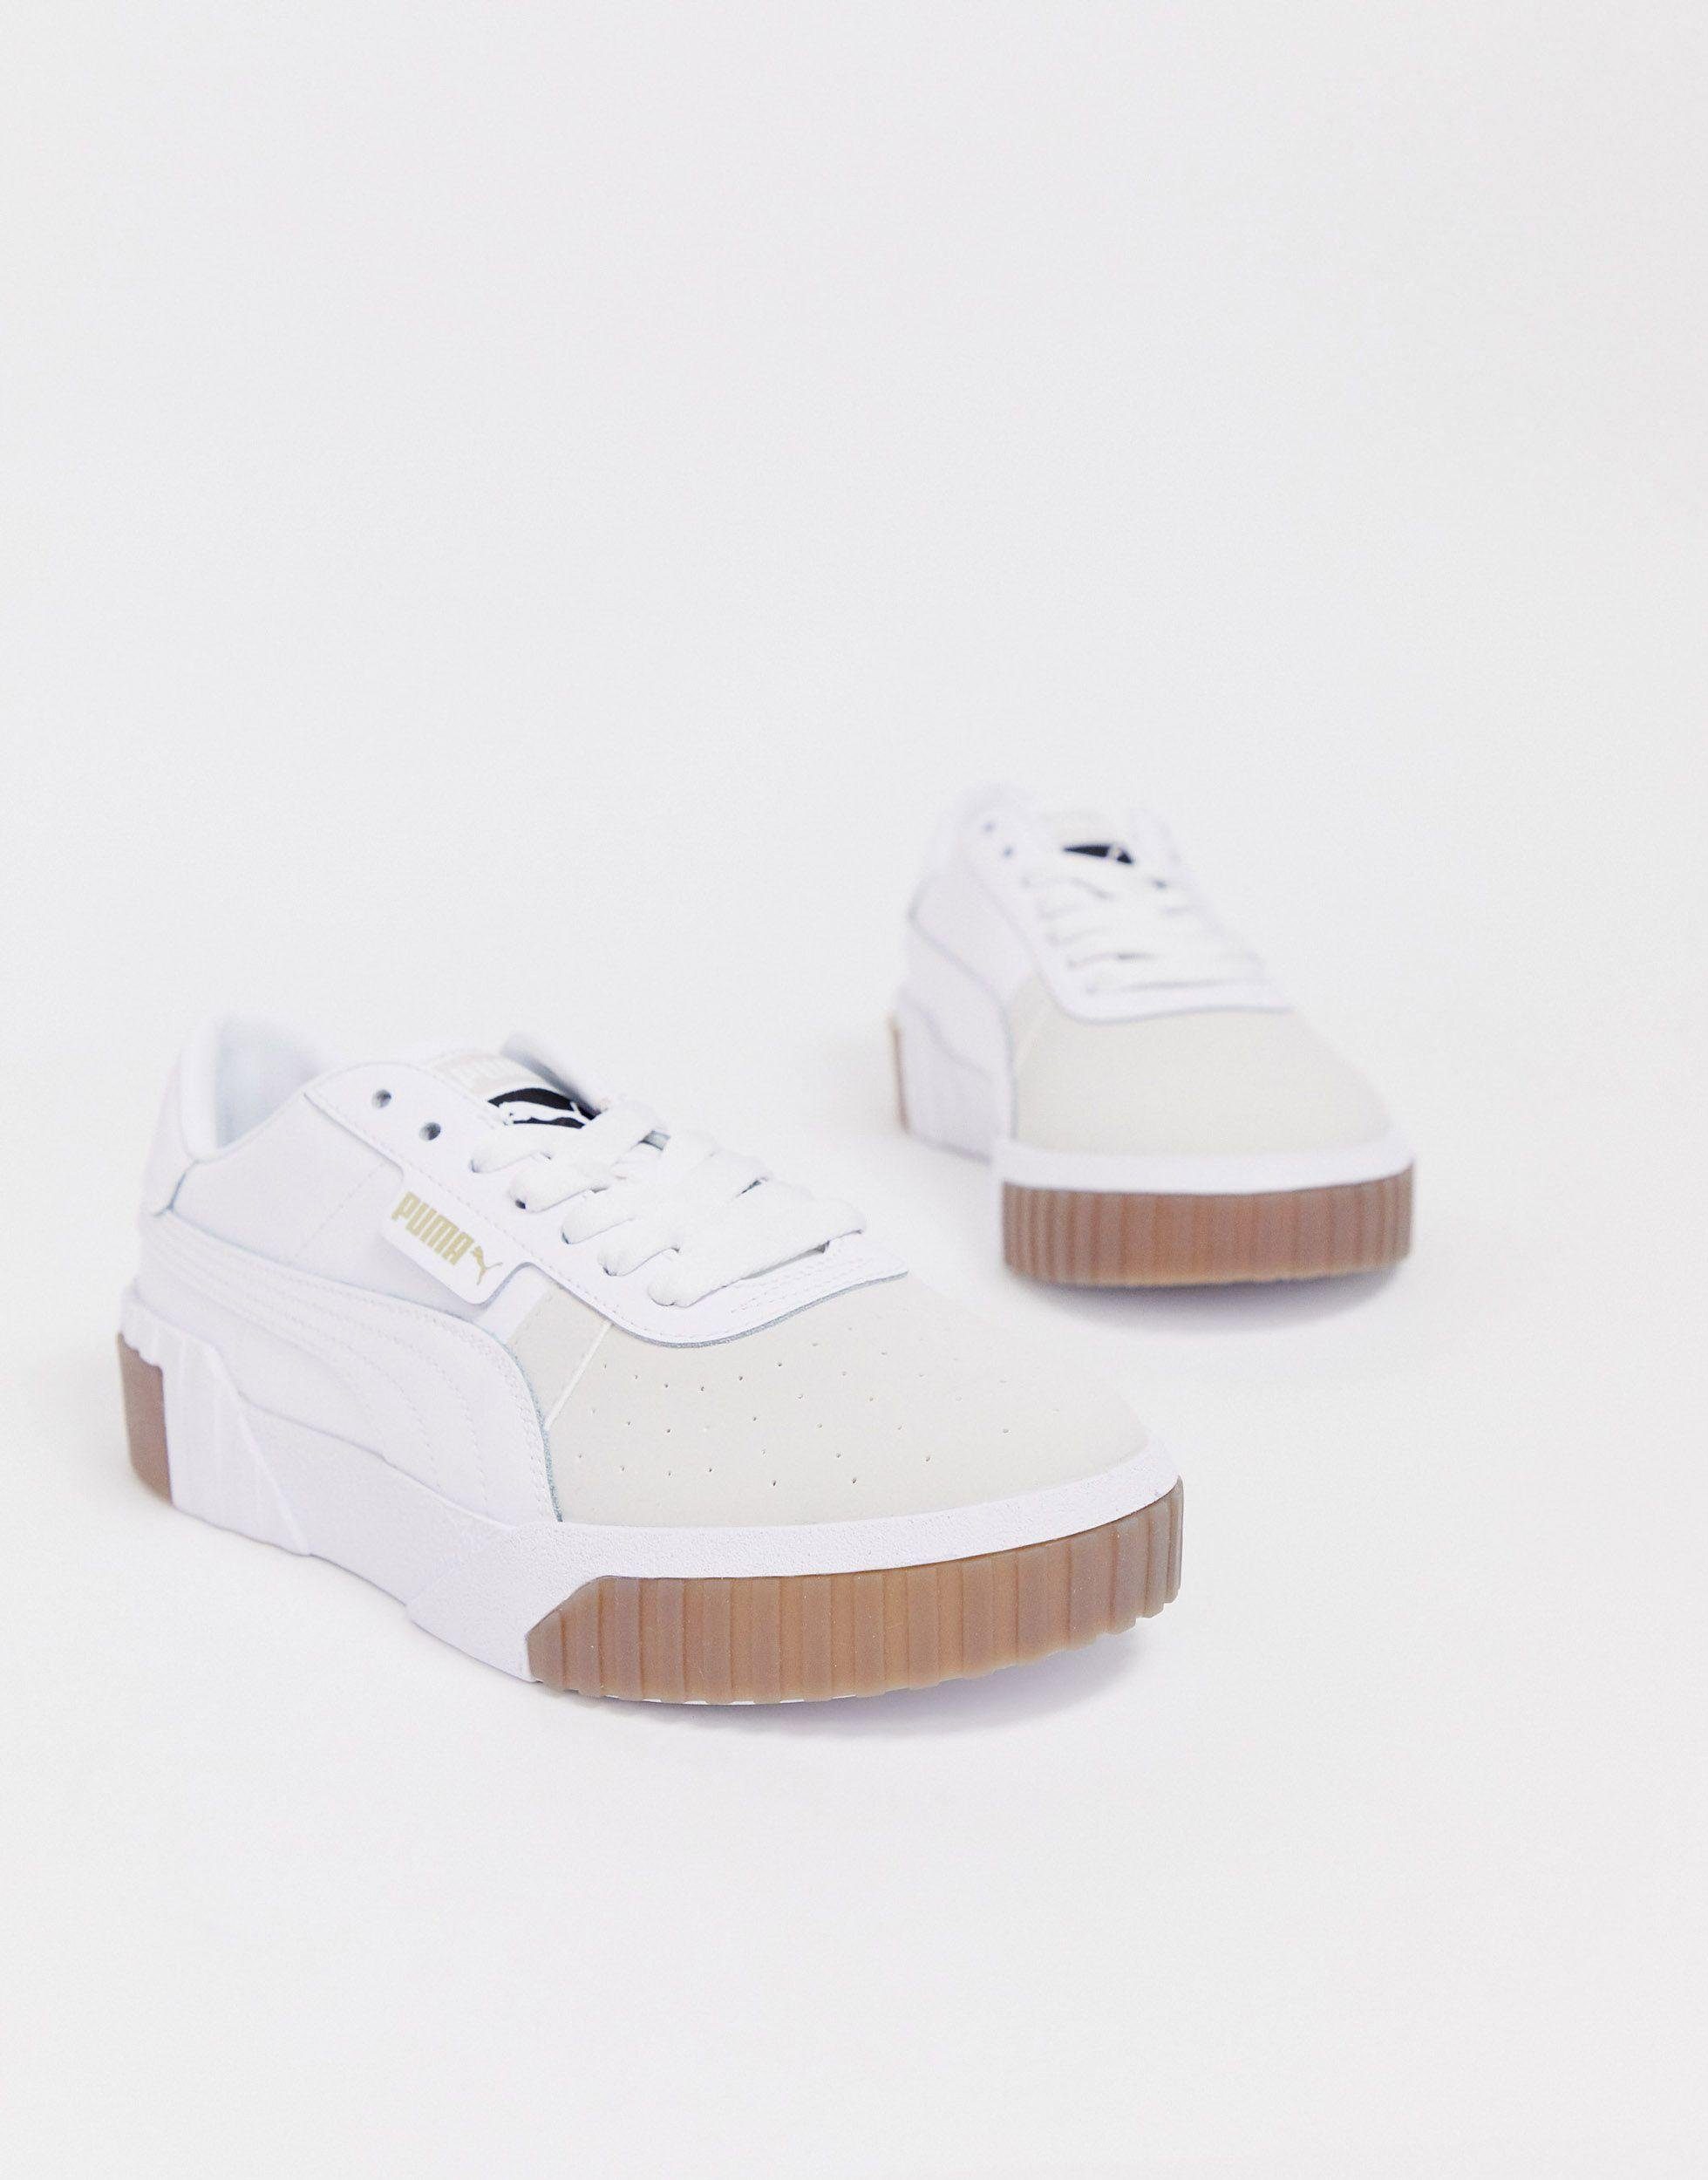 puma exotic cali trainers with gum sole in white